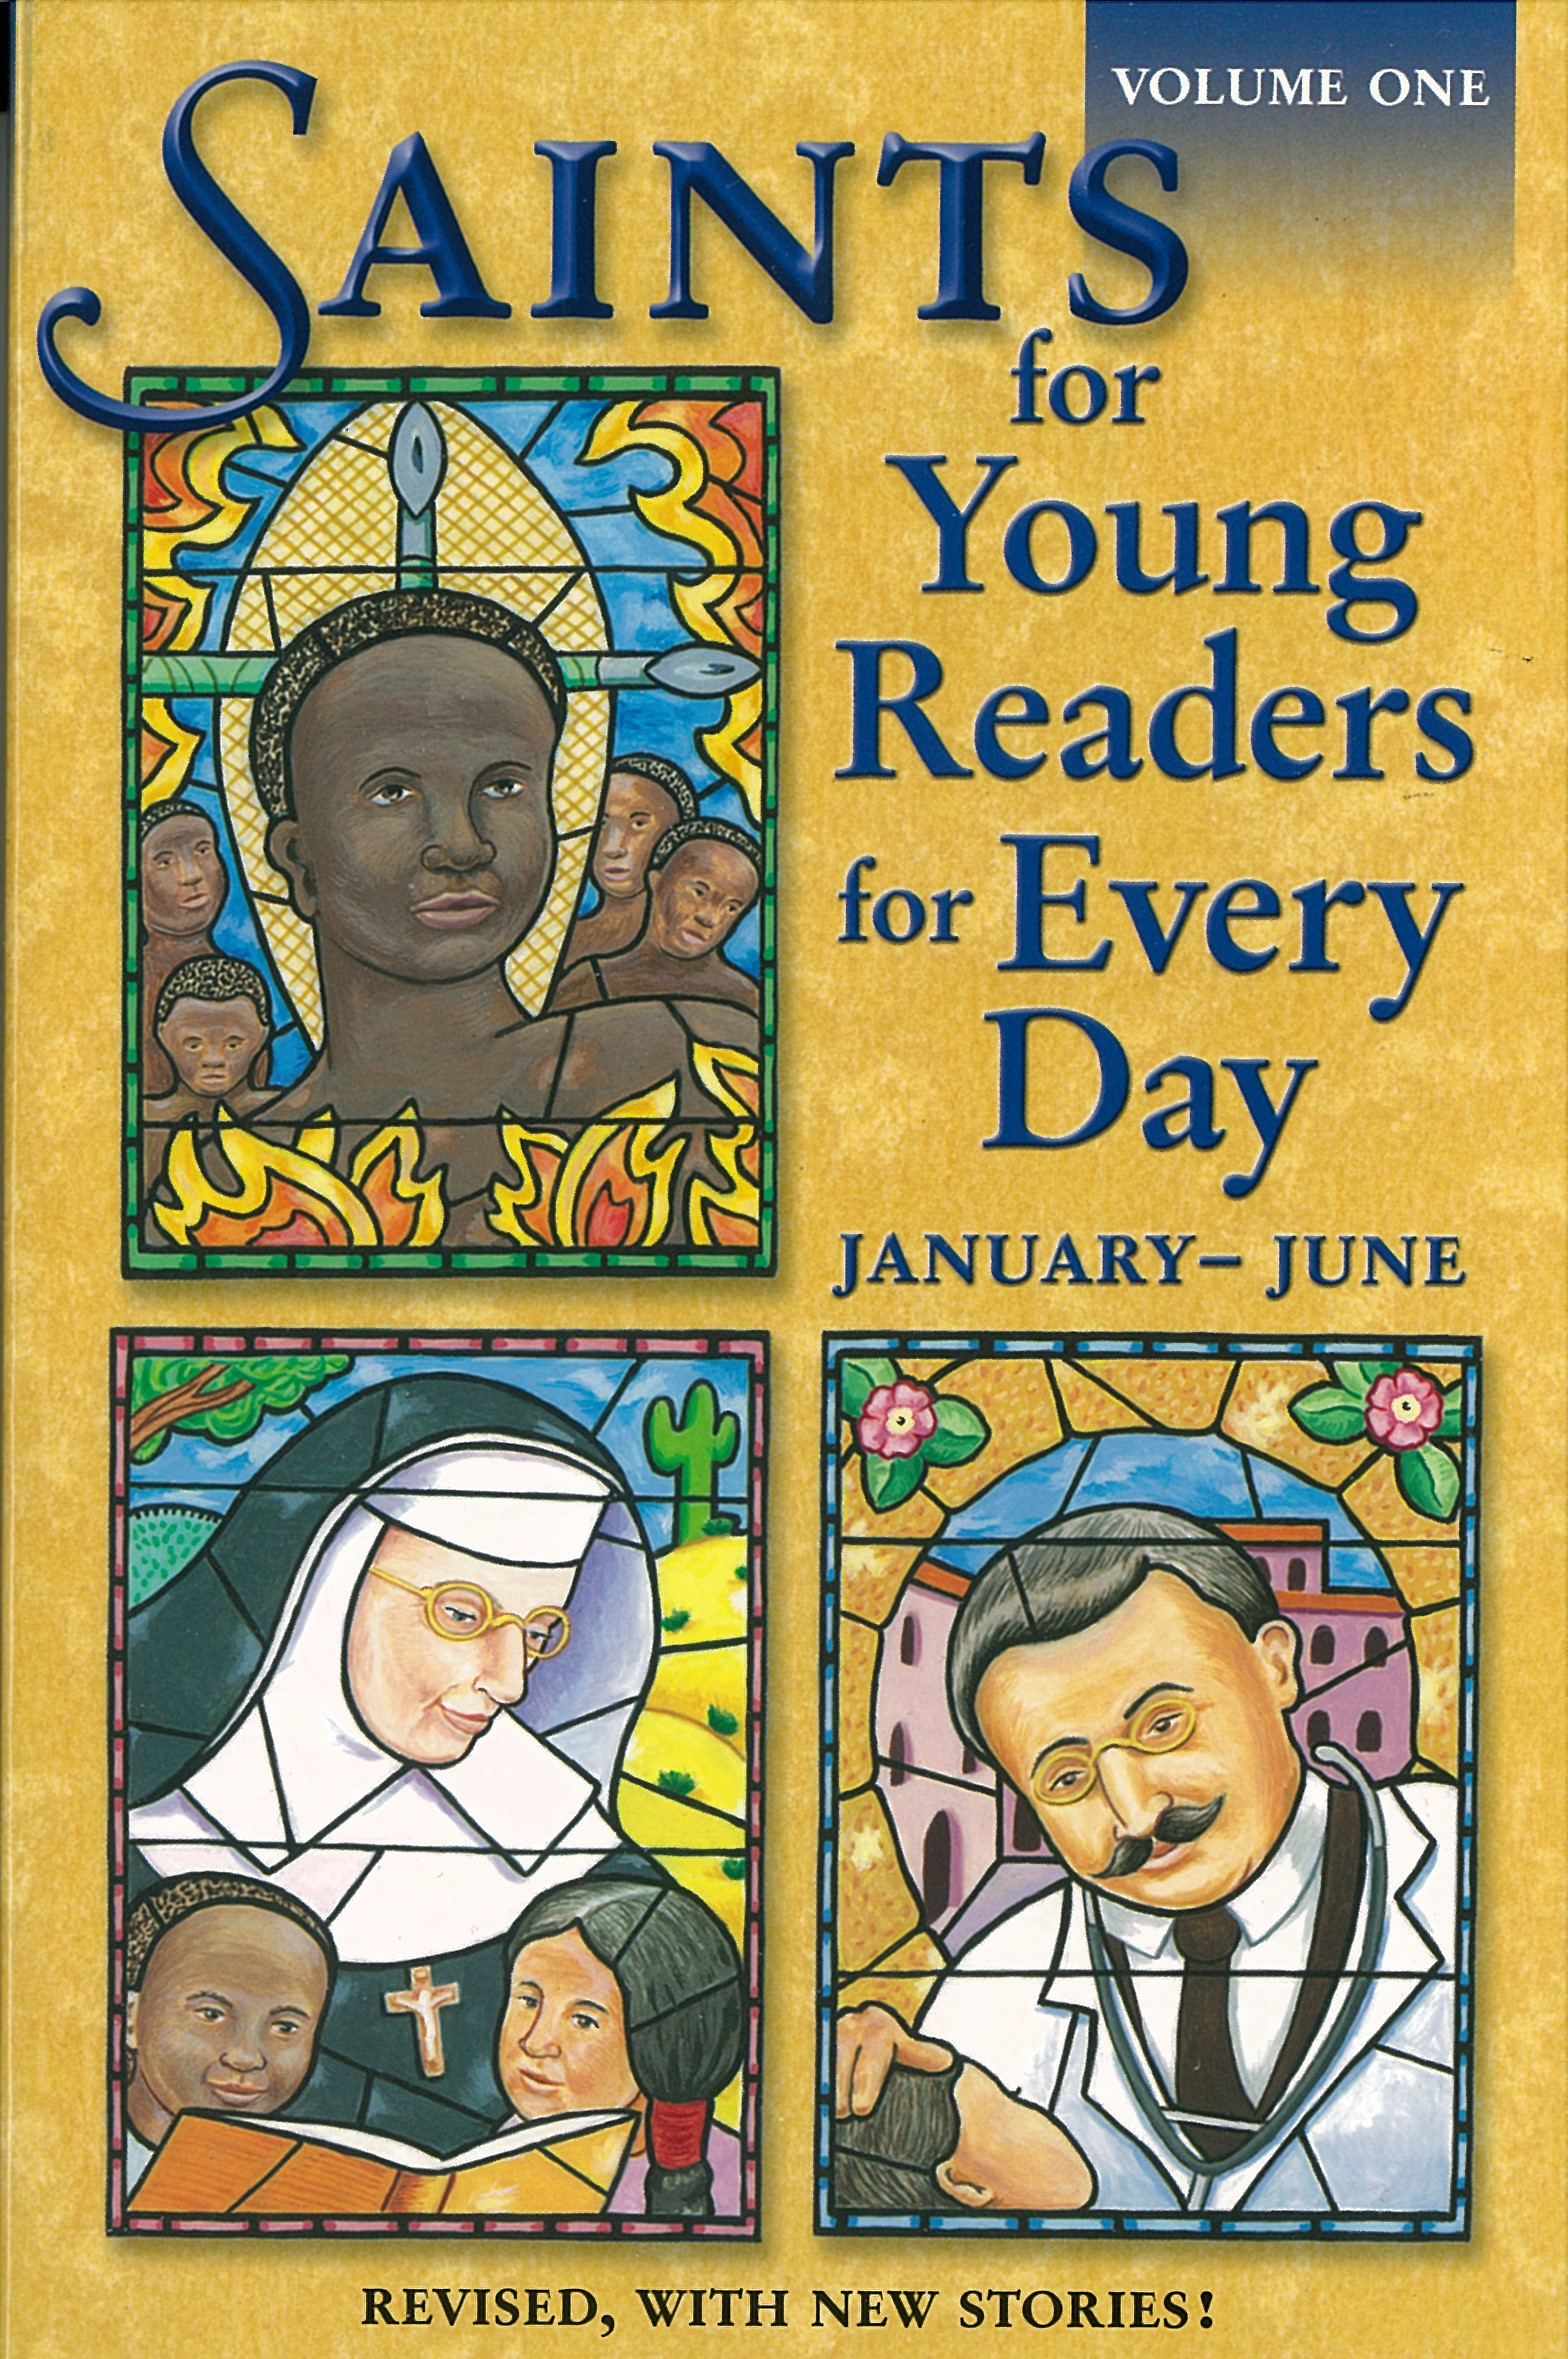 Saints for Young Readers for Every Day Vol. 1